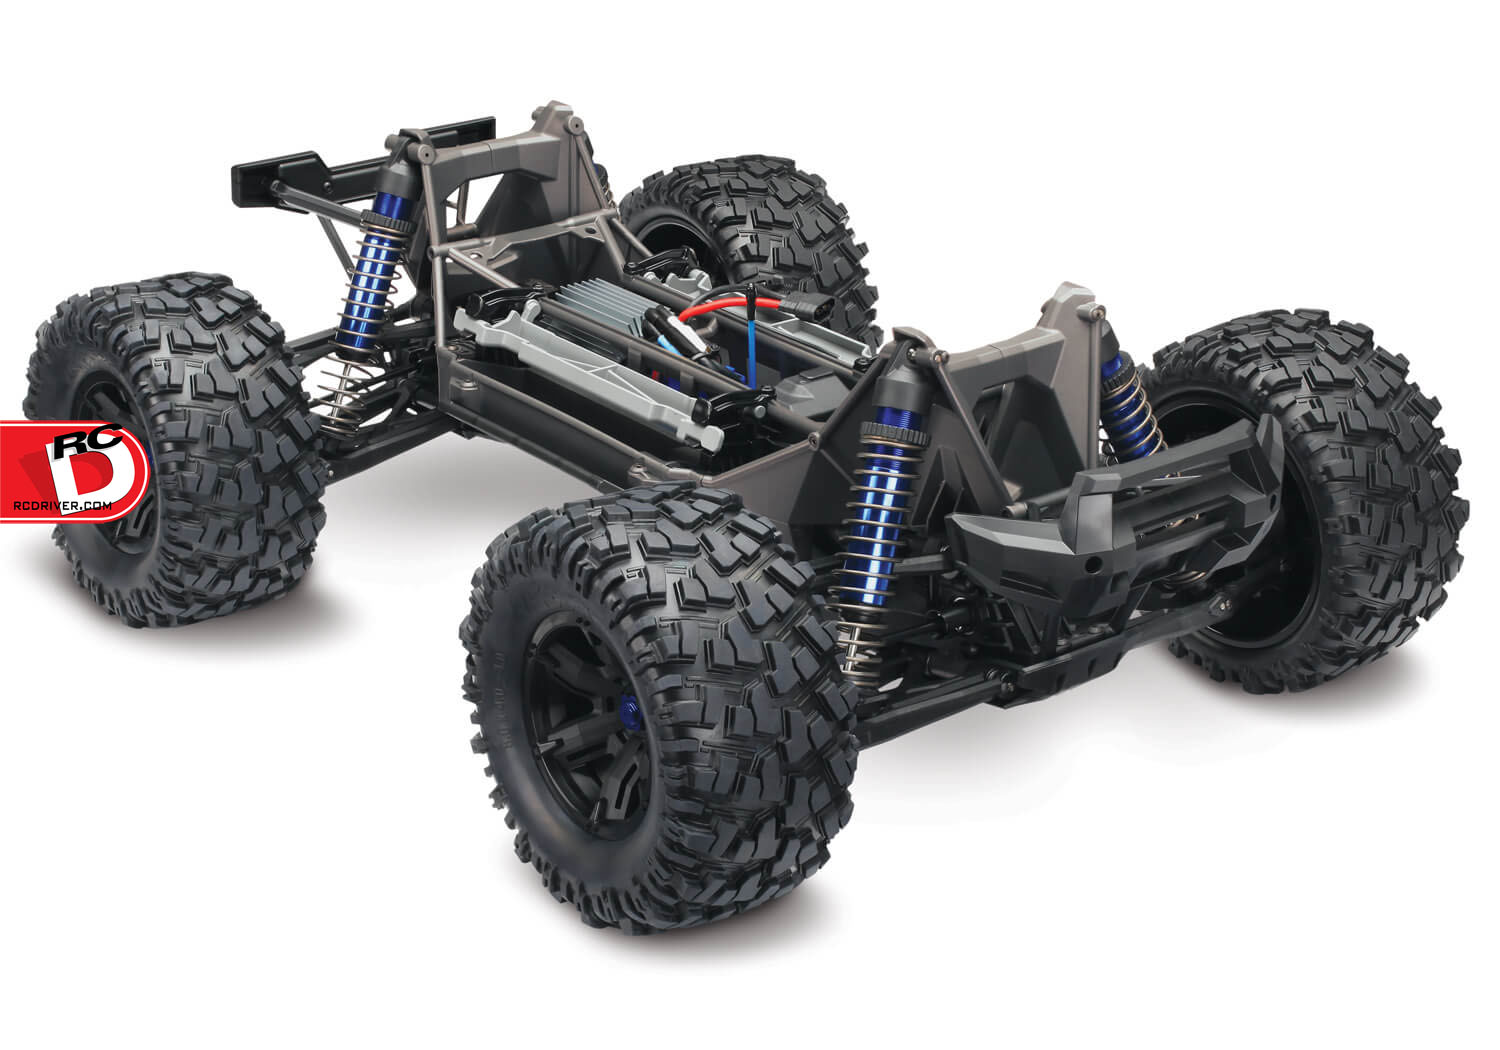 the best rc car in world with Traxxas X Maxx Electric Monster Truck 3 Copy on Milton Keynes together with Watch further Rc Tool Kit further The Best Drones In Reviews  parisons also Traxxas X Maxx Electric Monster Truck 3 Copy.